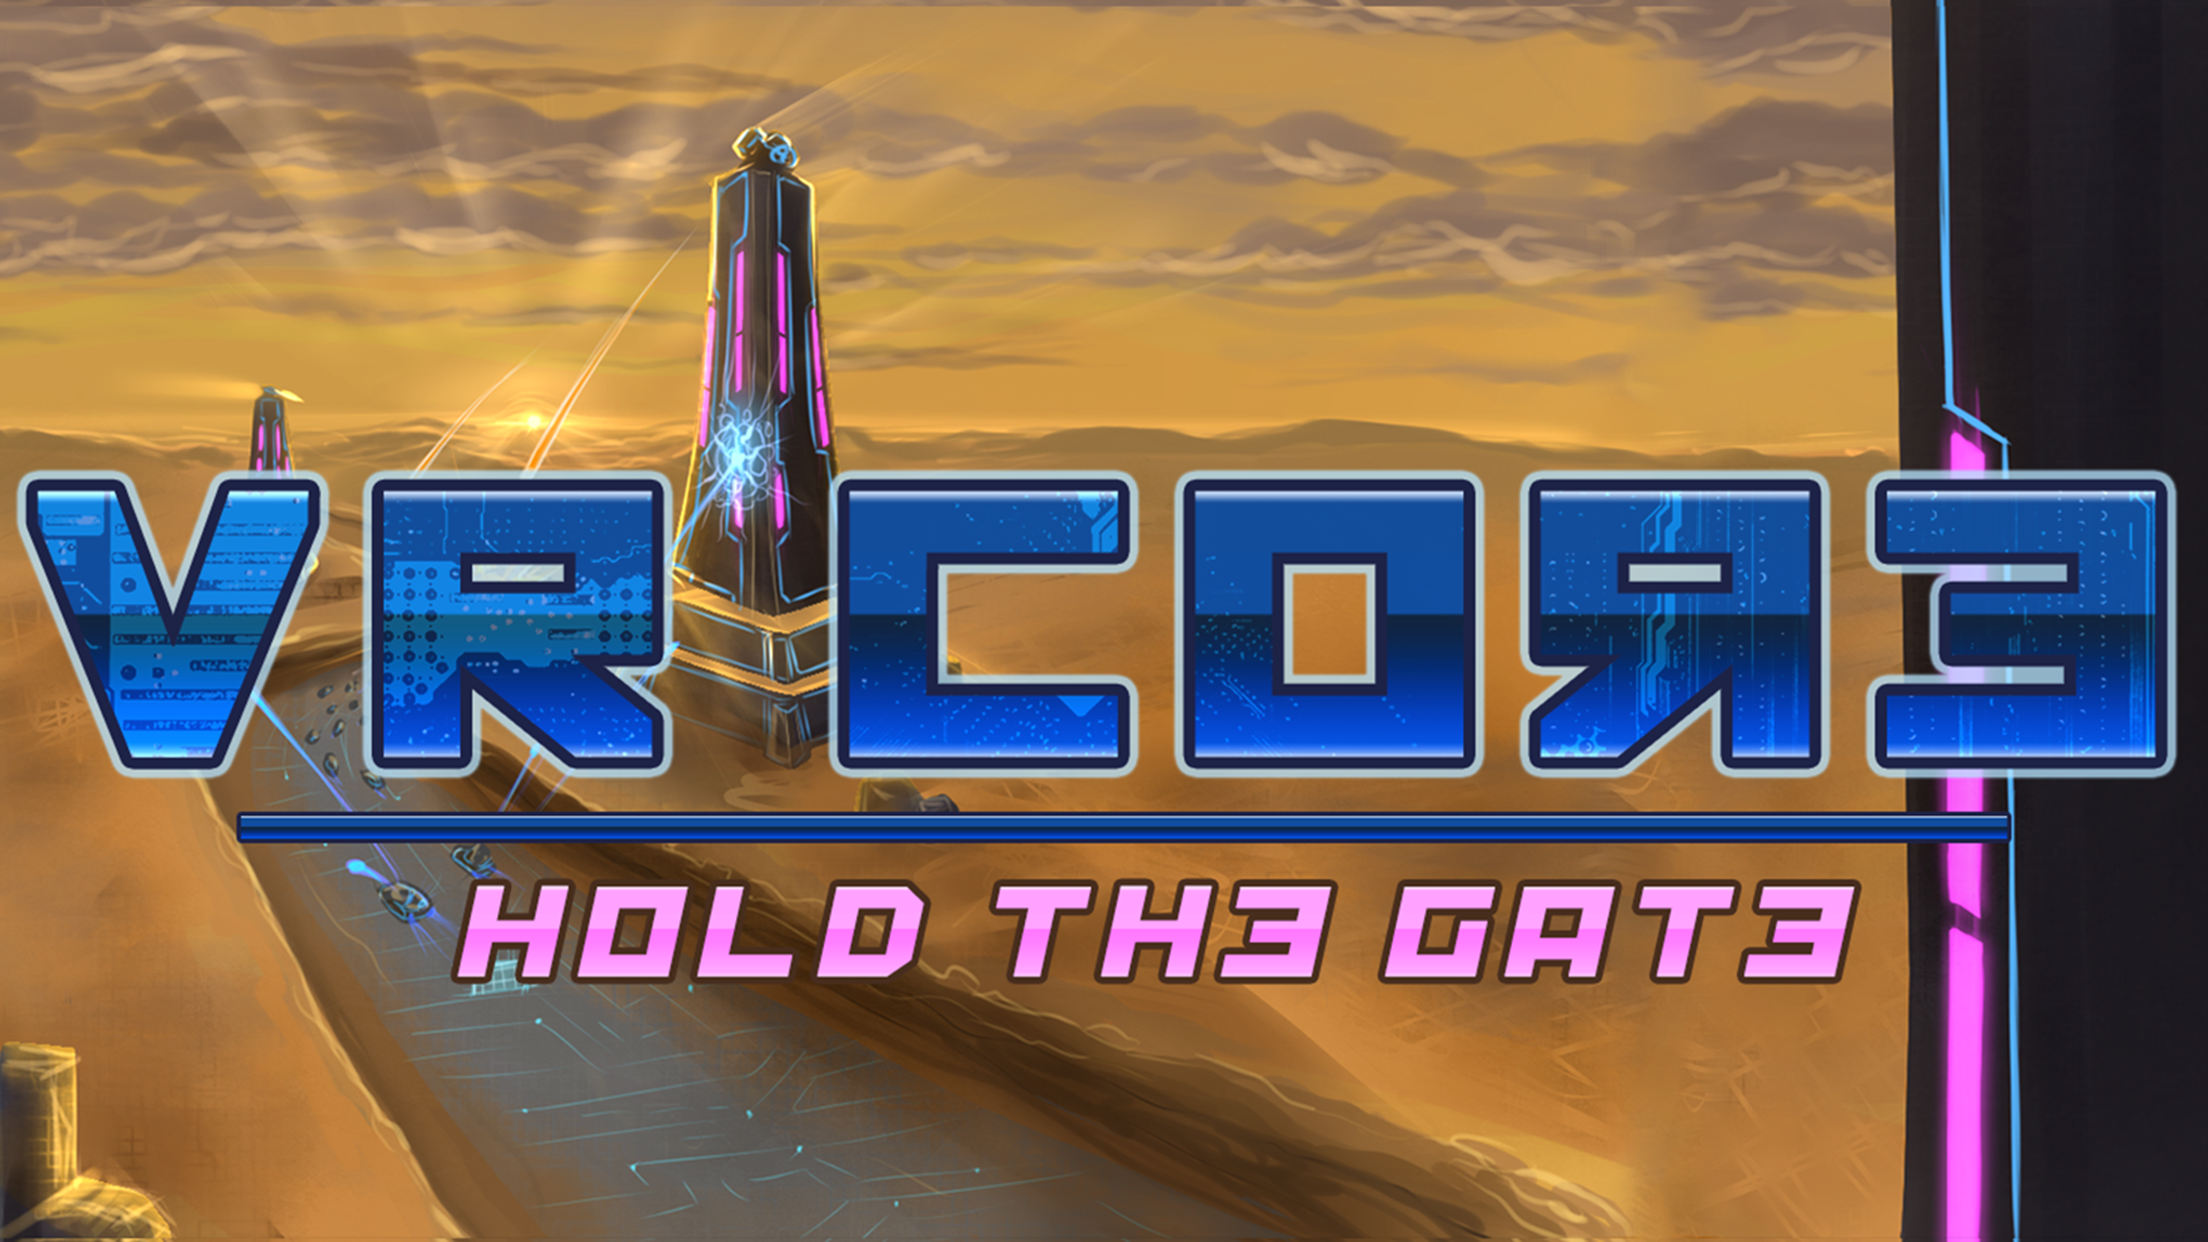 VR Core: Hold the Gate